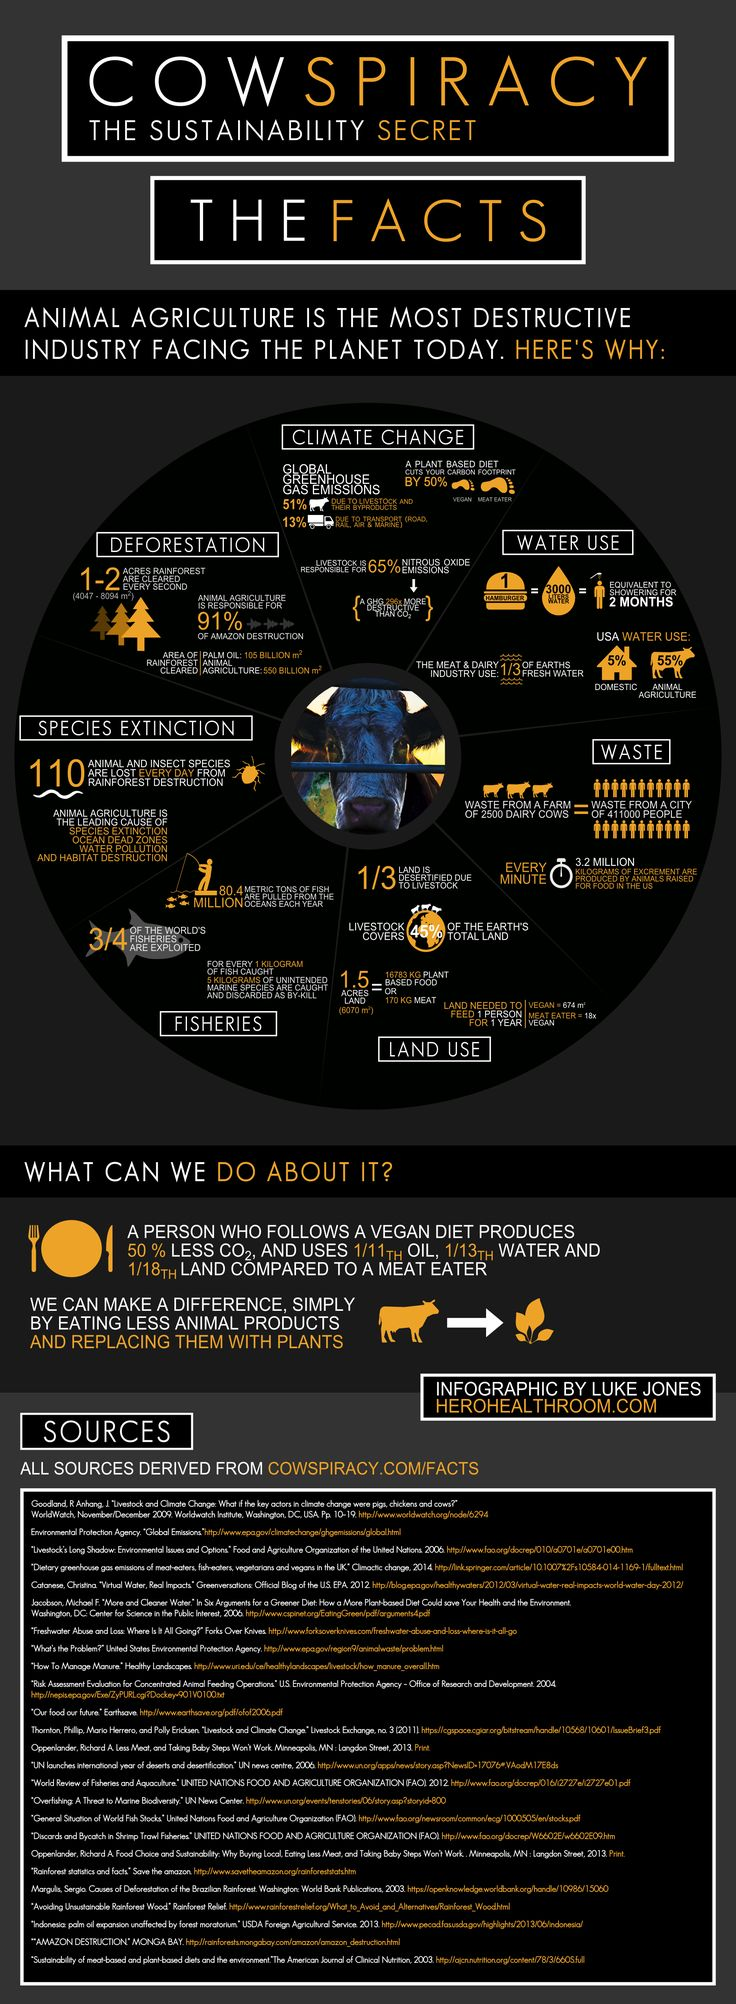 Did you know the meat & dairy industry uses 1/3rd of the Earth's fresh water supply? #cowspiracy